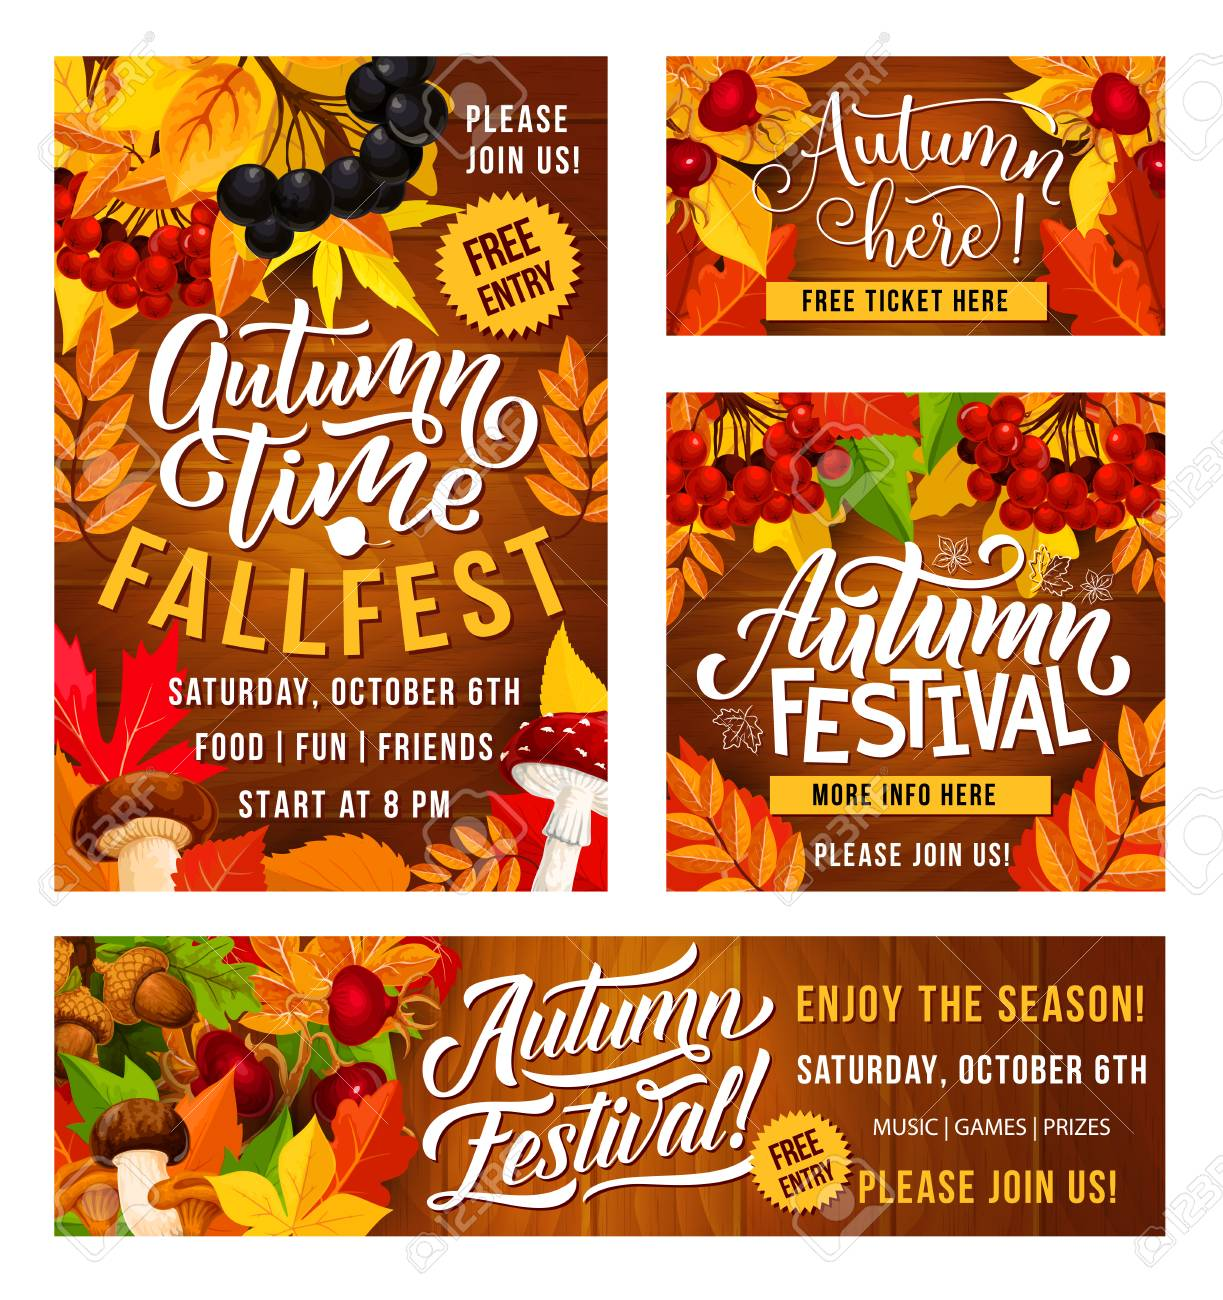 Thanksgiving Day fall fest invitation posters for traditional holiday festival celebration. Vector design of autumn vegetables and fruits harvest with maple leaf and berries - 112004406